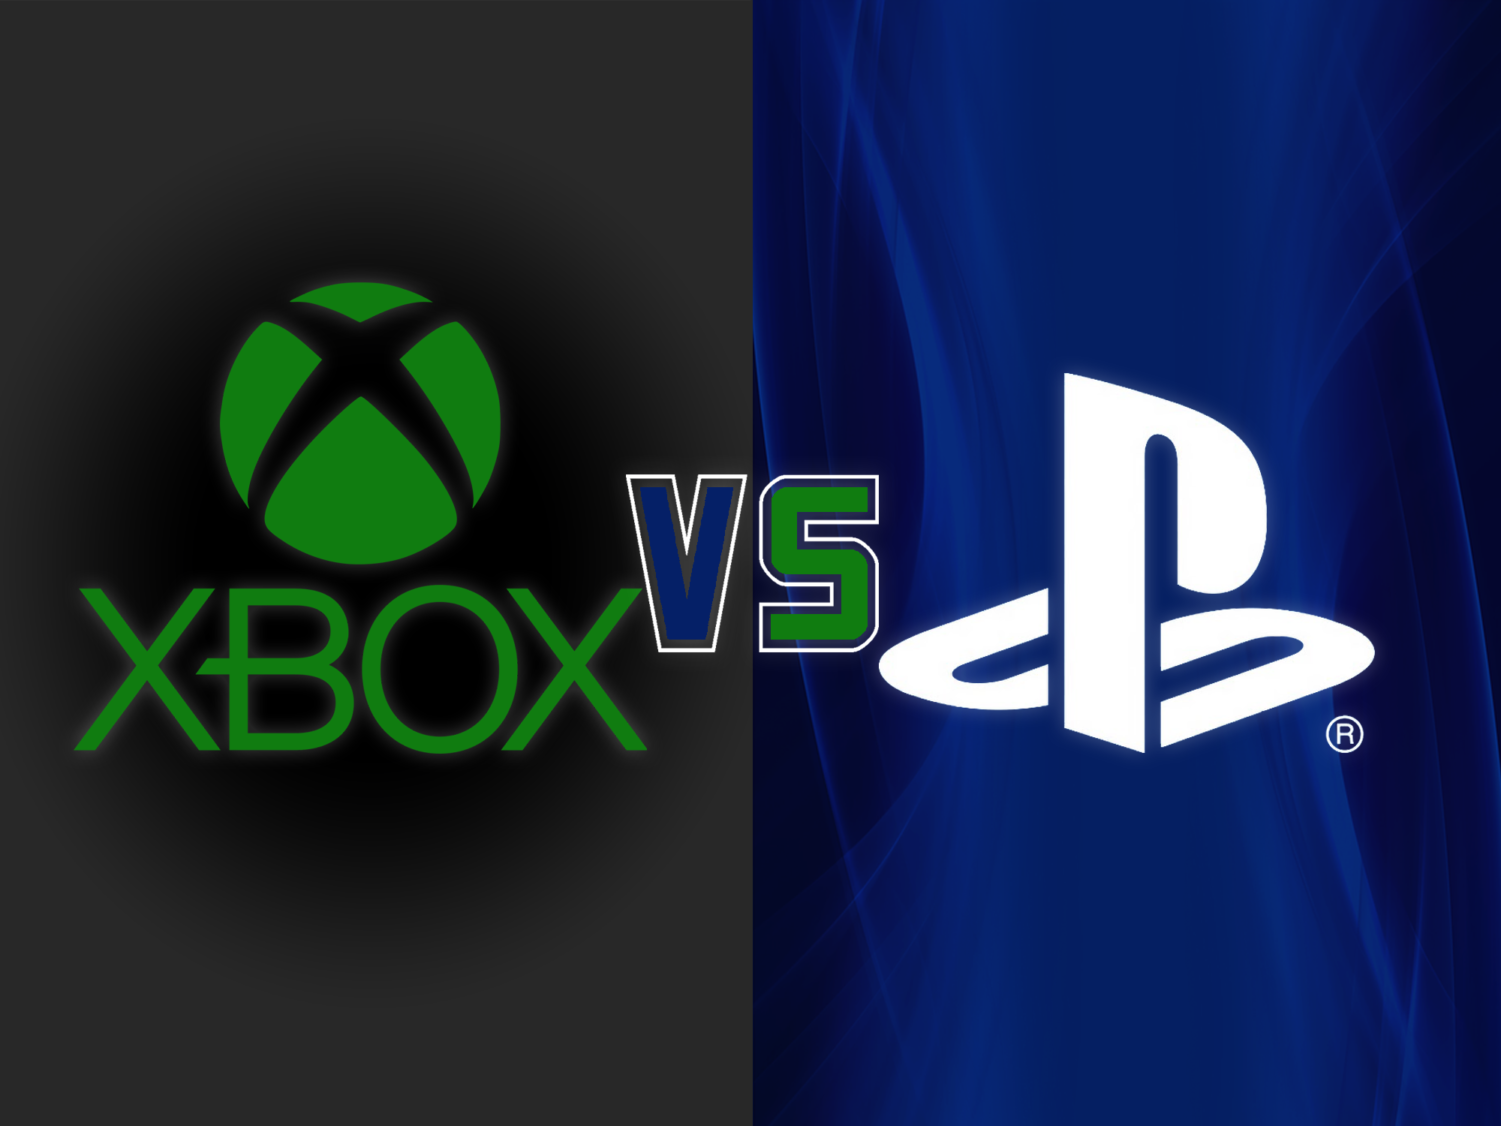 The battle rages on as to which console reigns supreme.